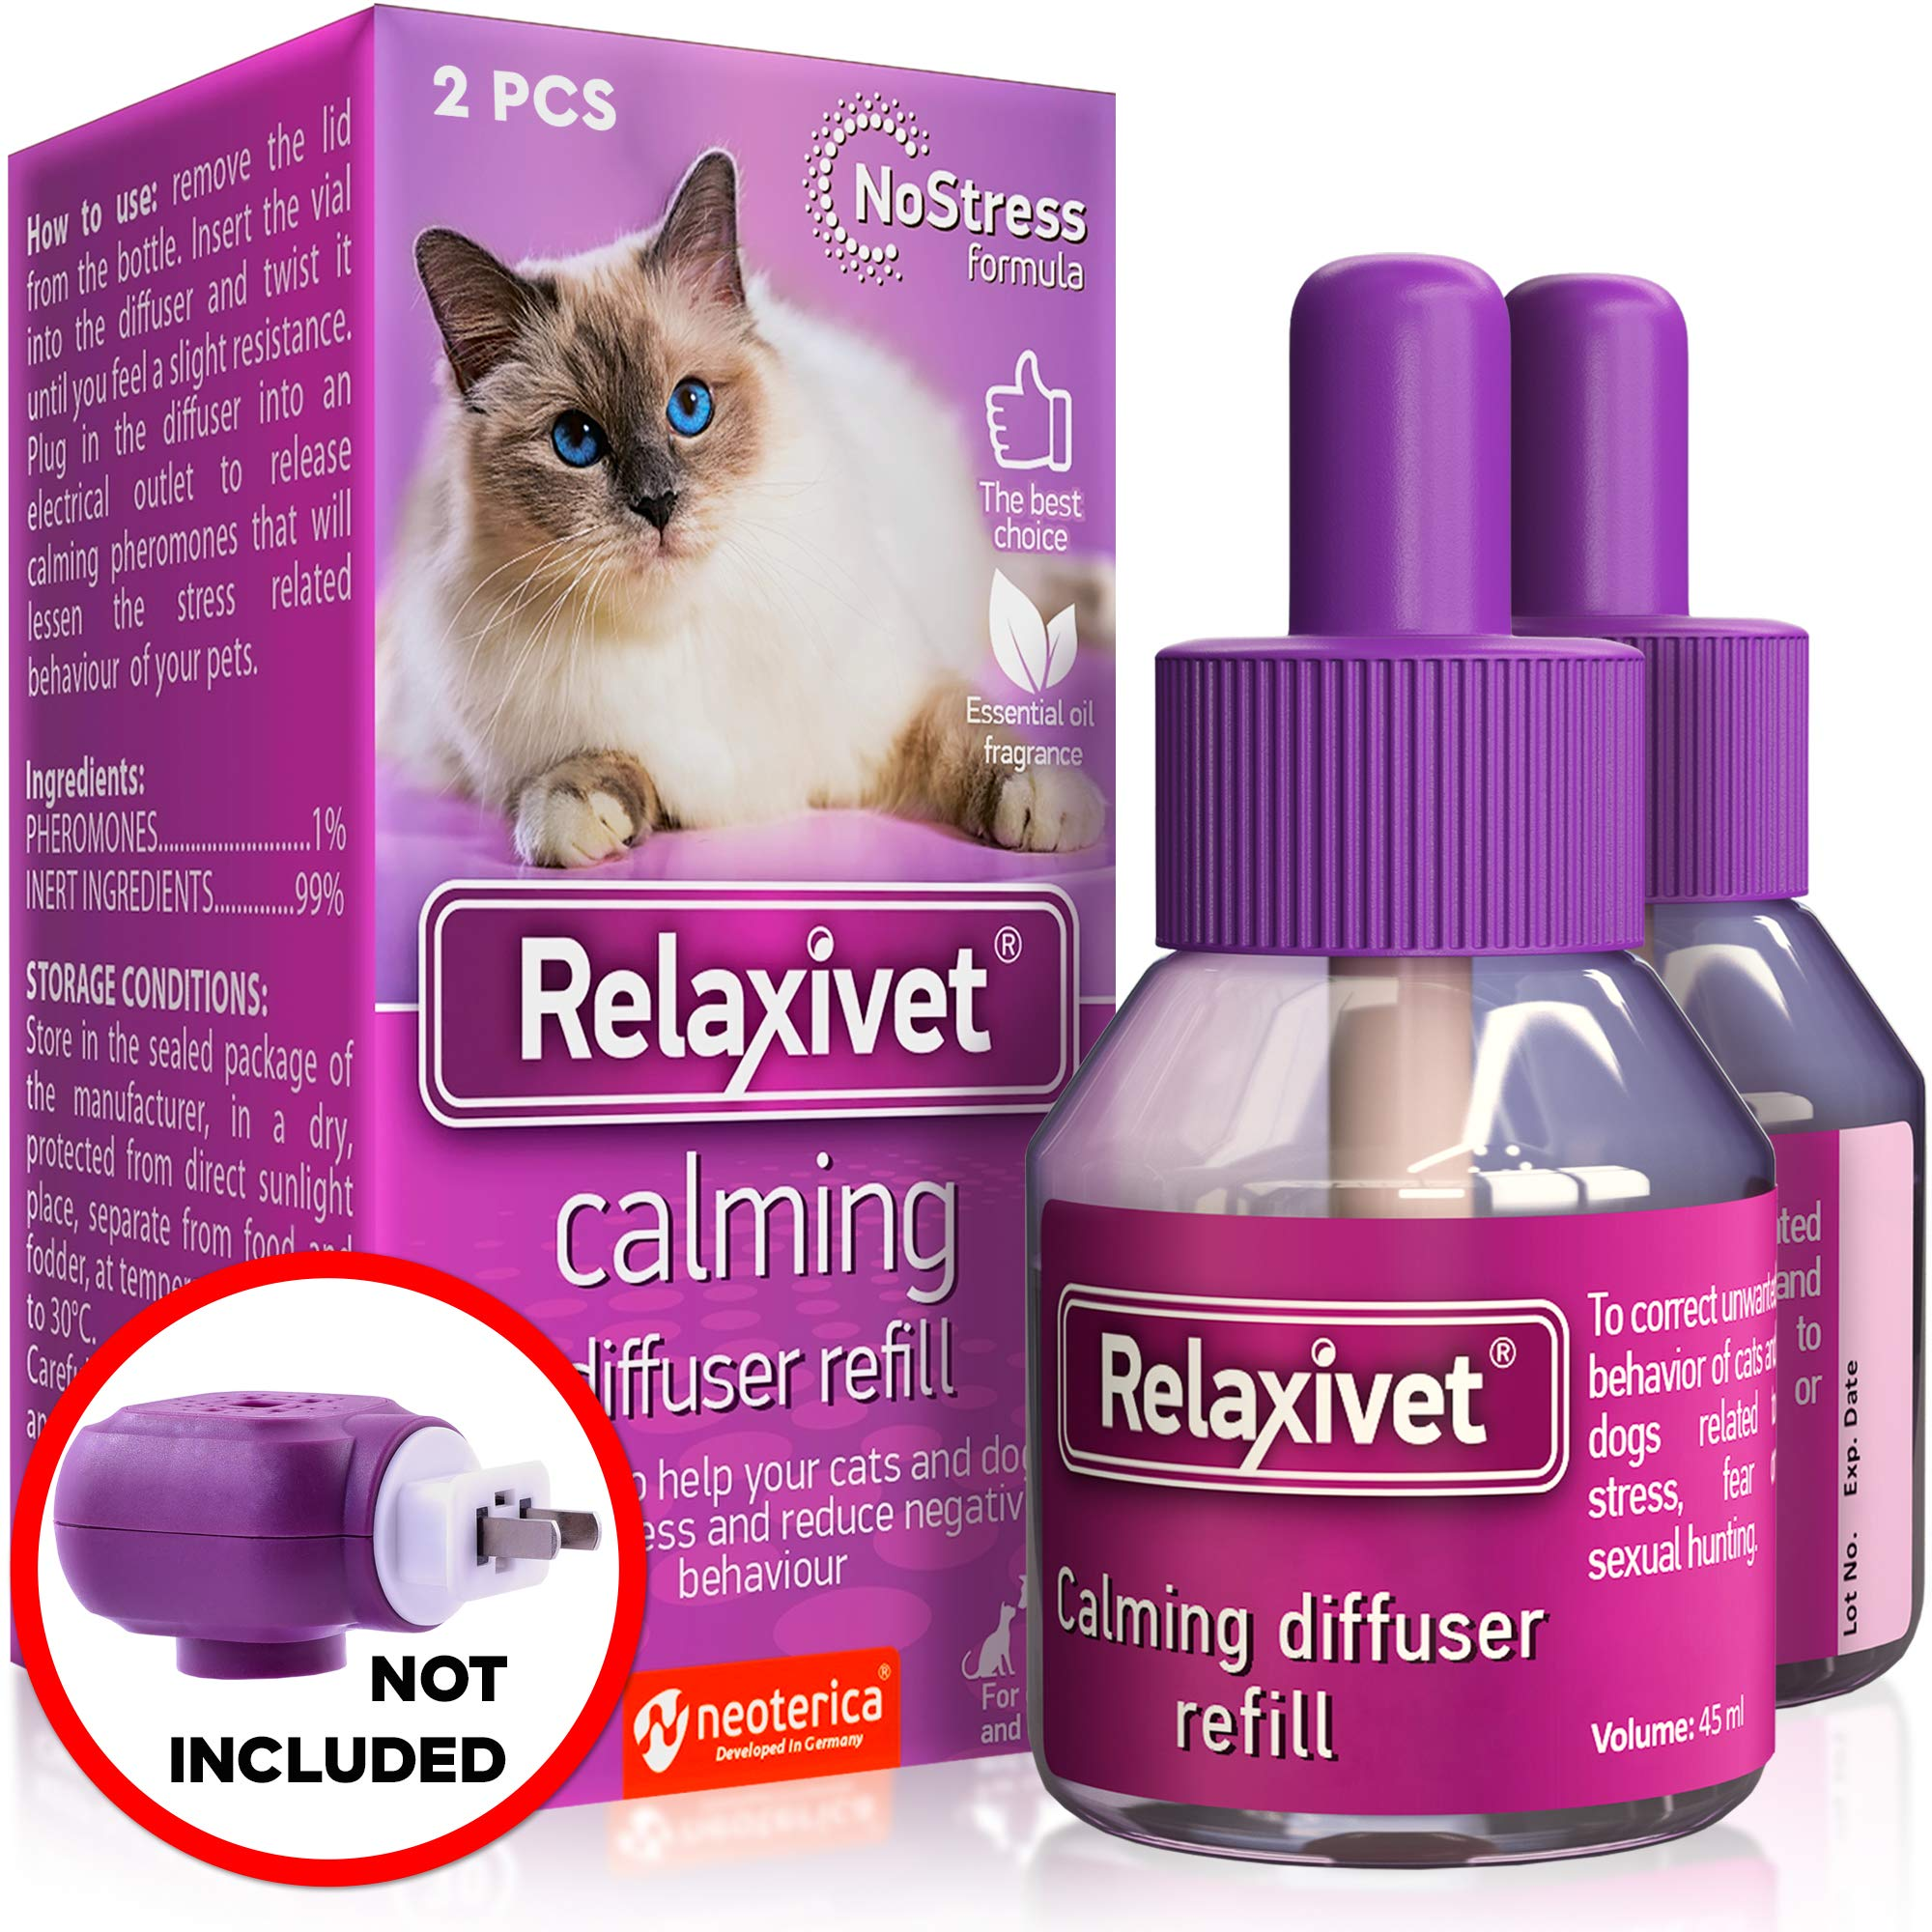 Relaxivet Natural Cat Calming Diffuser Refill - Improved No-Stress Formula - Anti-Anxiety Treatment #1 for Cats and Dogs with a Long-Lasting Calming Effect by Relaxivet